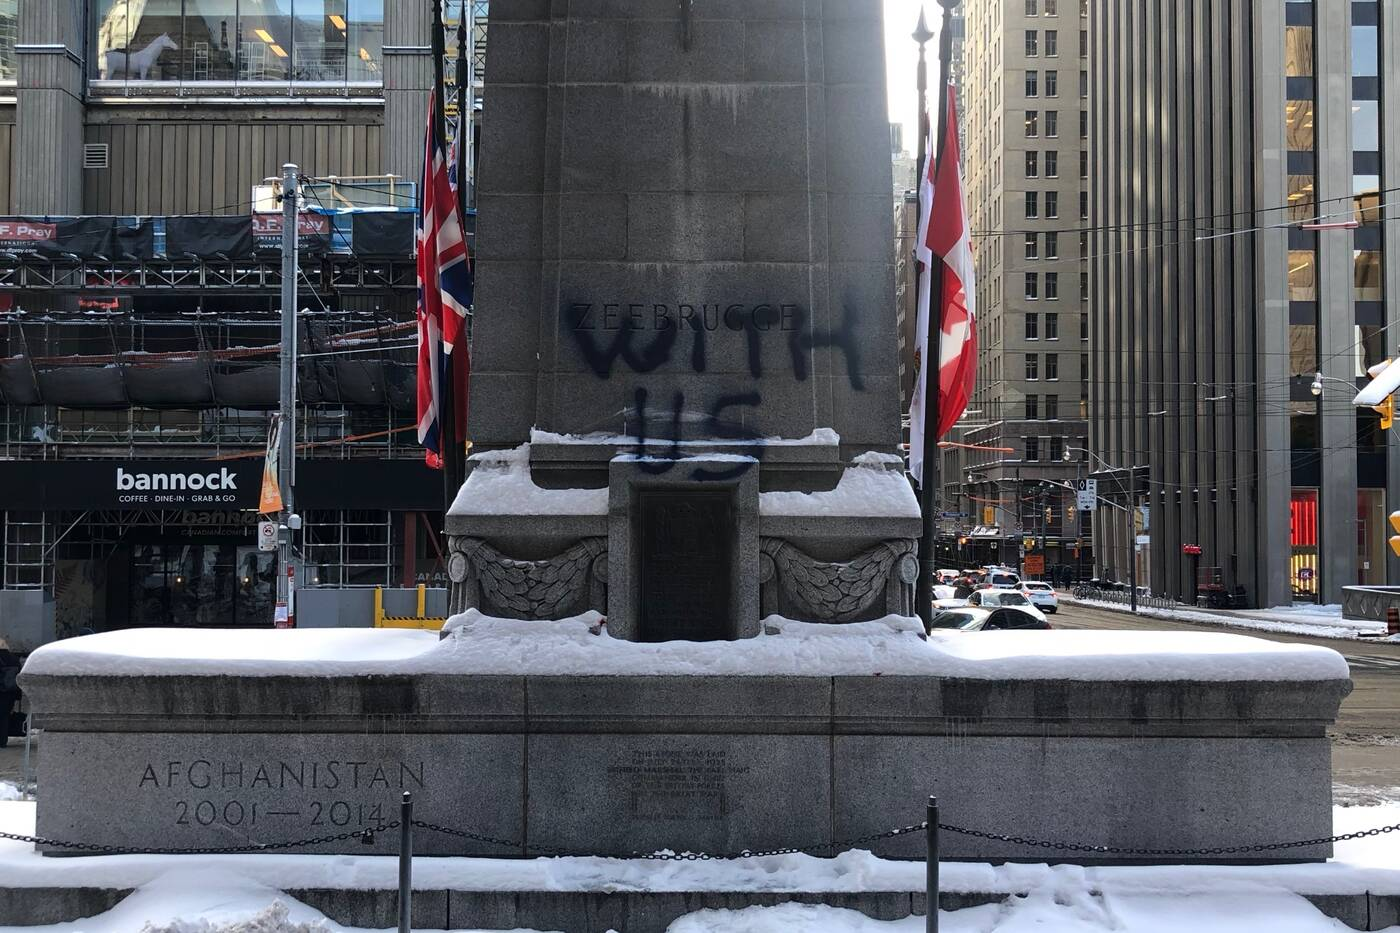 One of two phrases spray painted on the Old City Hall Cenotaph